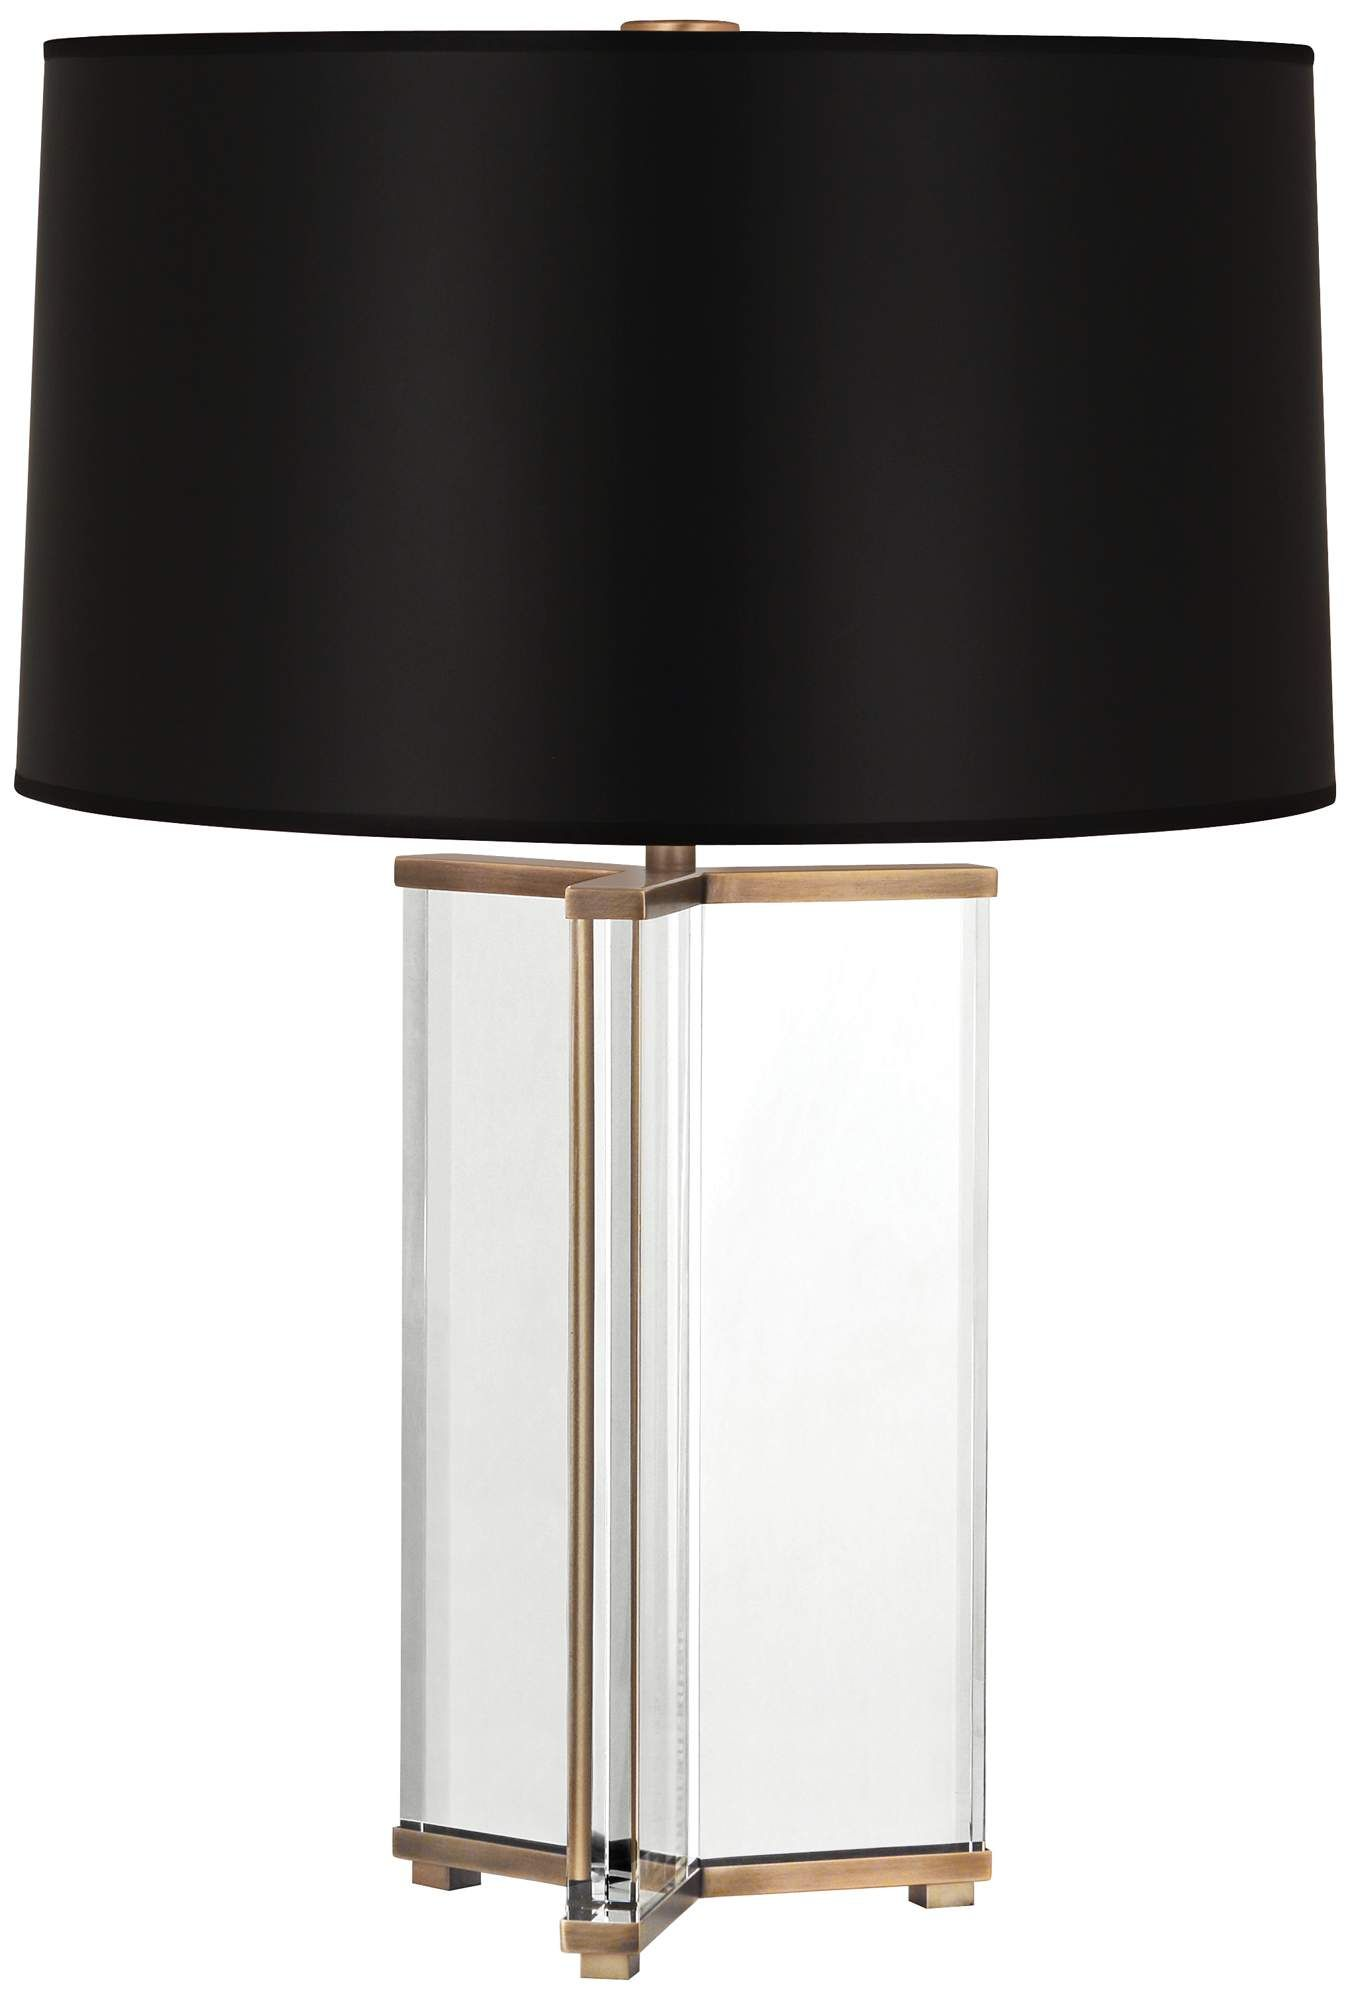 Fineas Aged Brass Crystal Table Lamp with Black Opaque Shade #tablelamp #tablelamps #tablelampideas #tablelampsforlivingroom